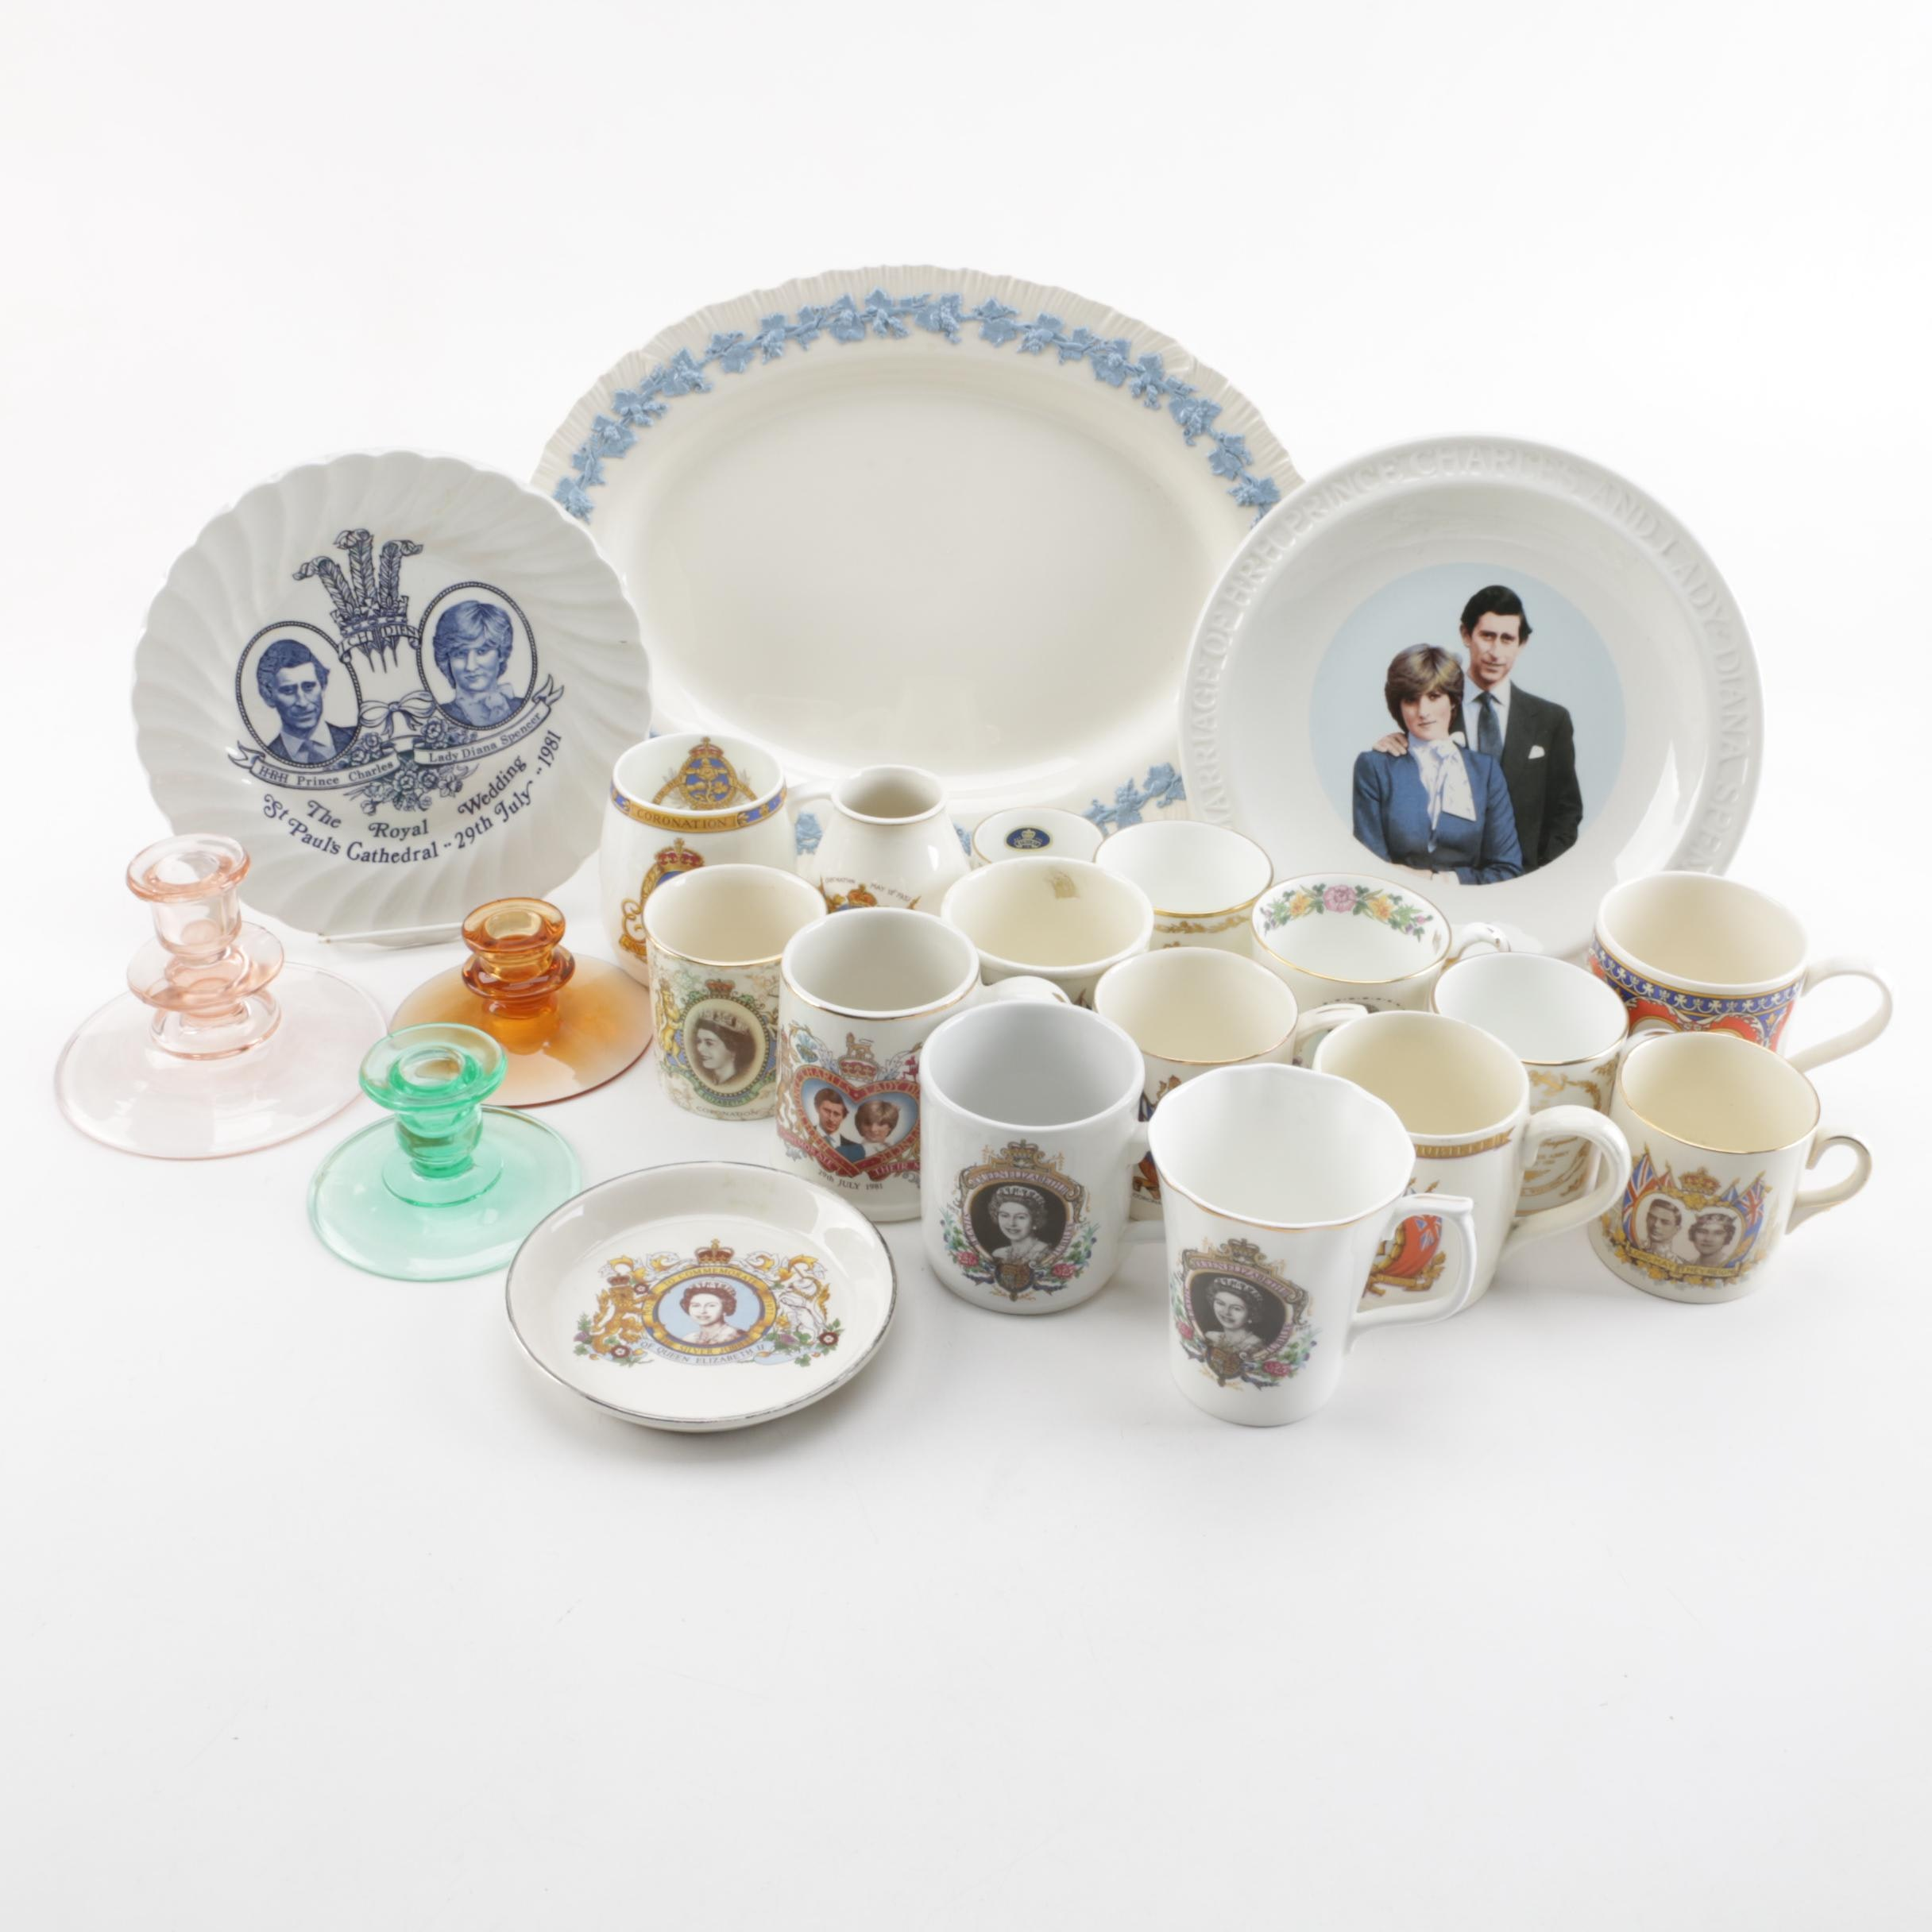 British Royal Family Commemorative Tableware and More